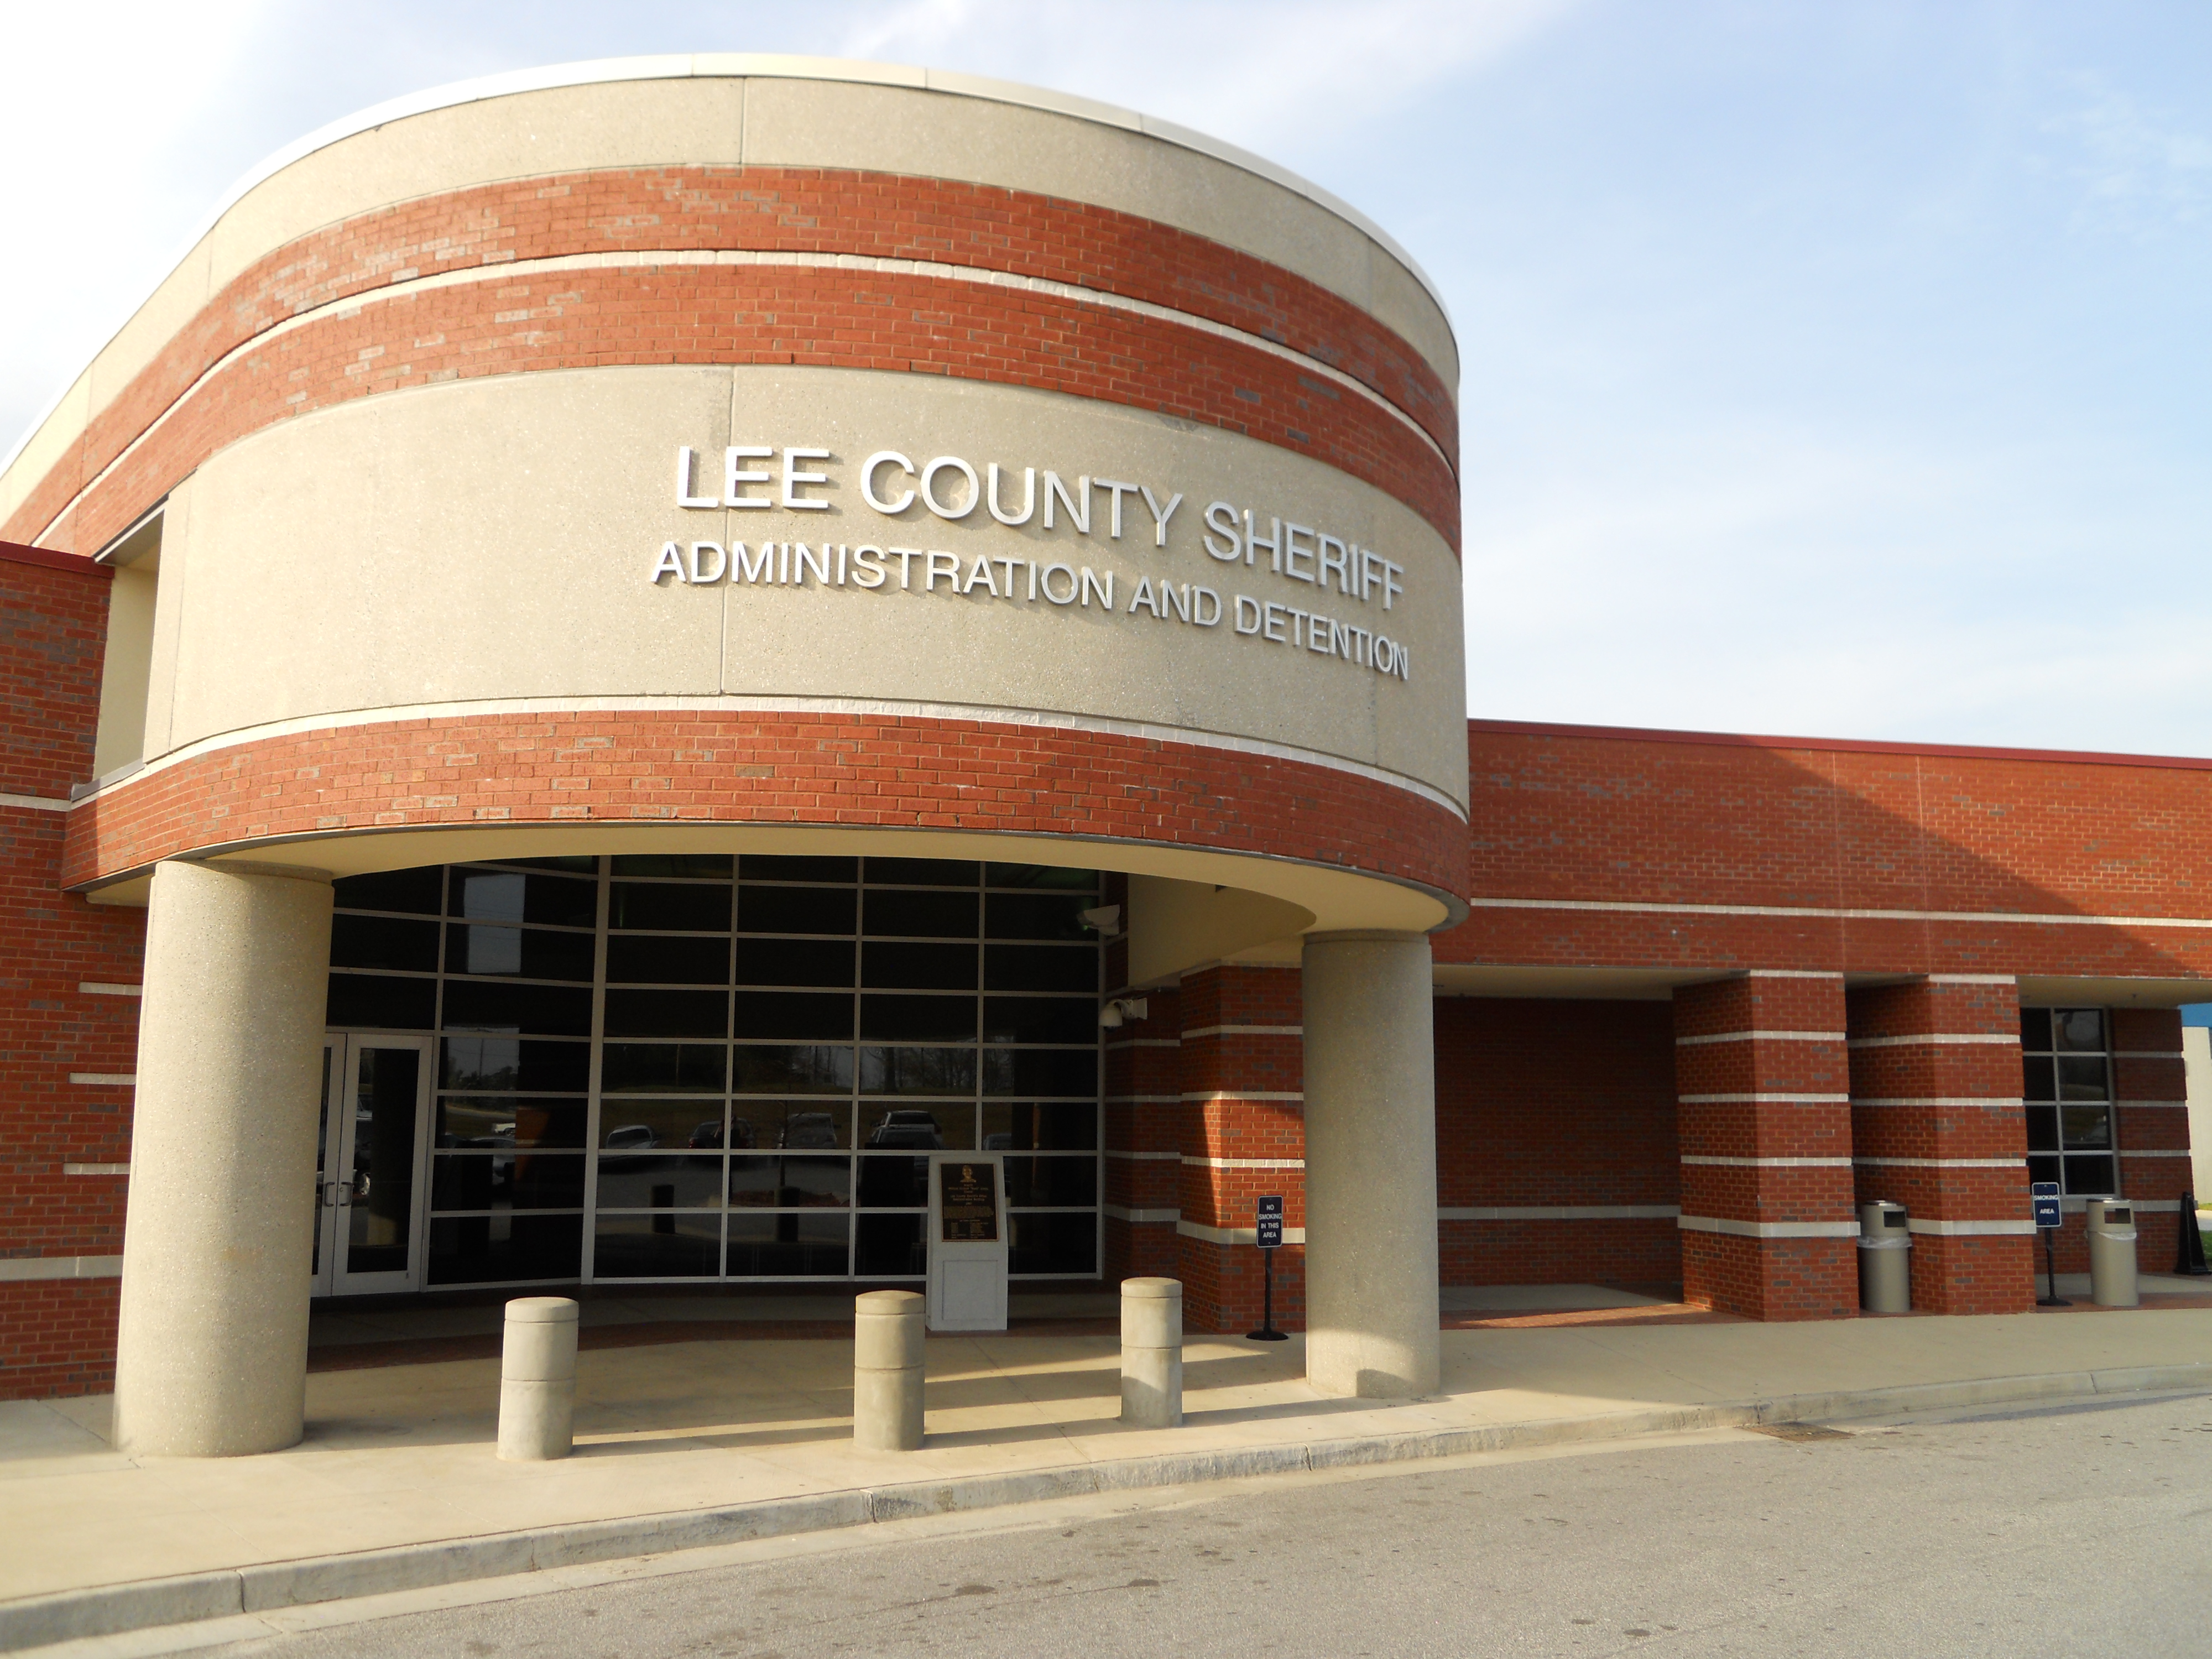 Alabama lee county salem - File Lee County Sheriff S Department Offices